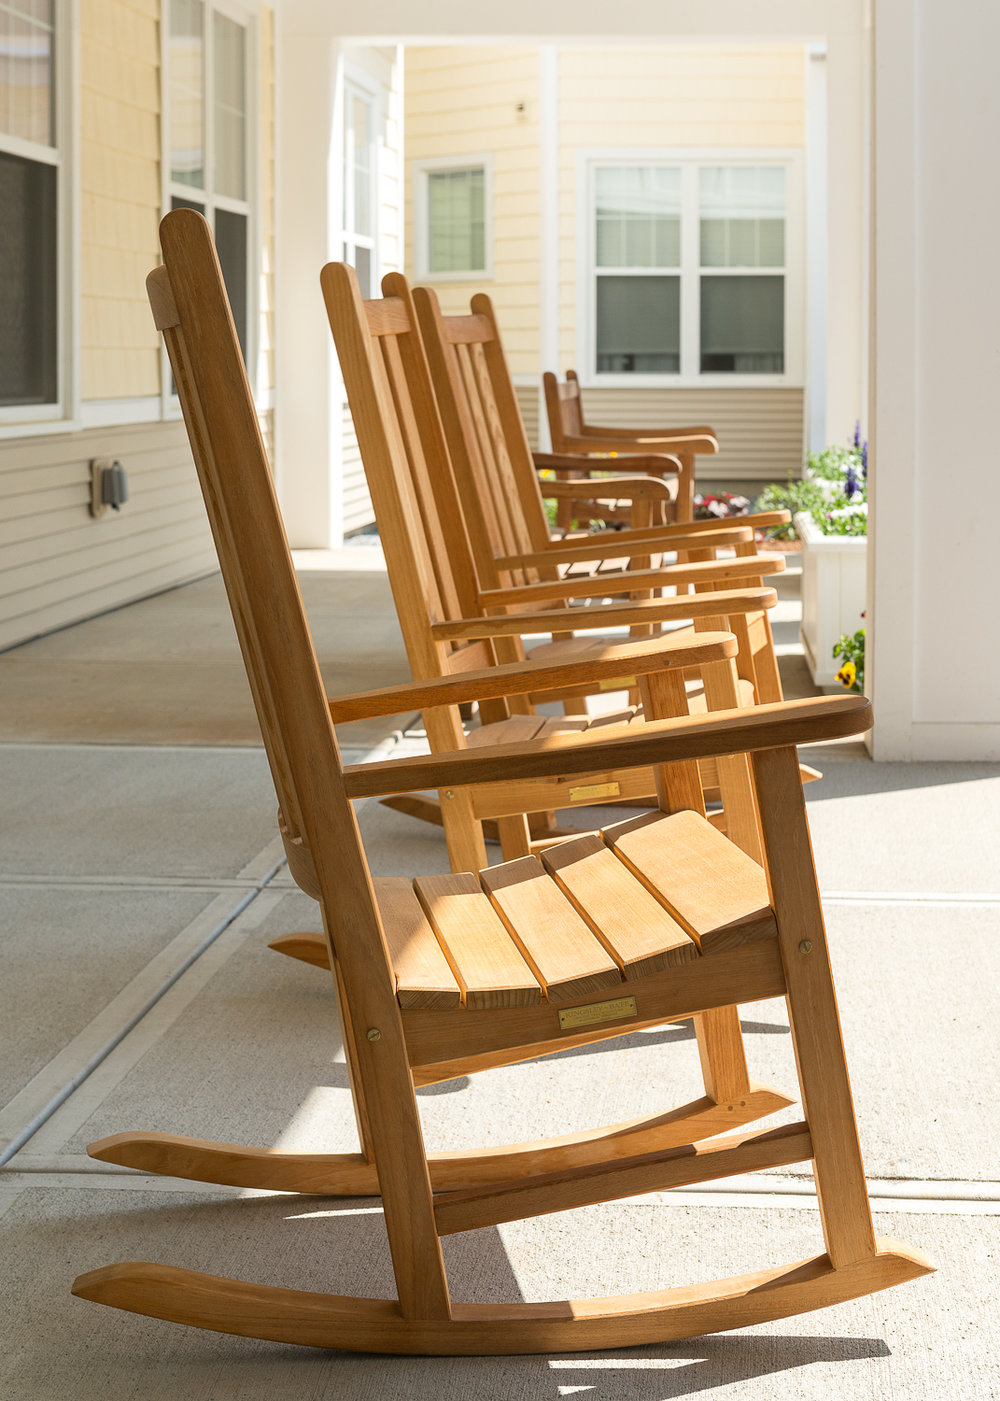 Rocking Chairs To Enjoy The Summer Sun.